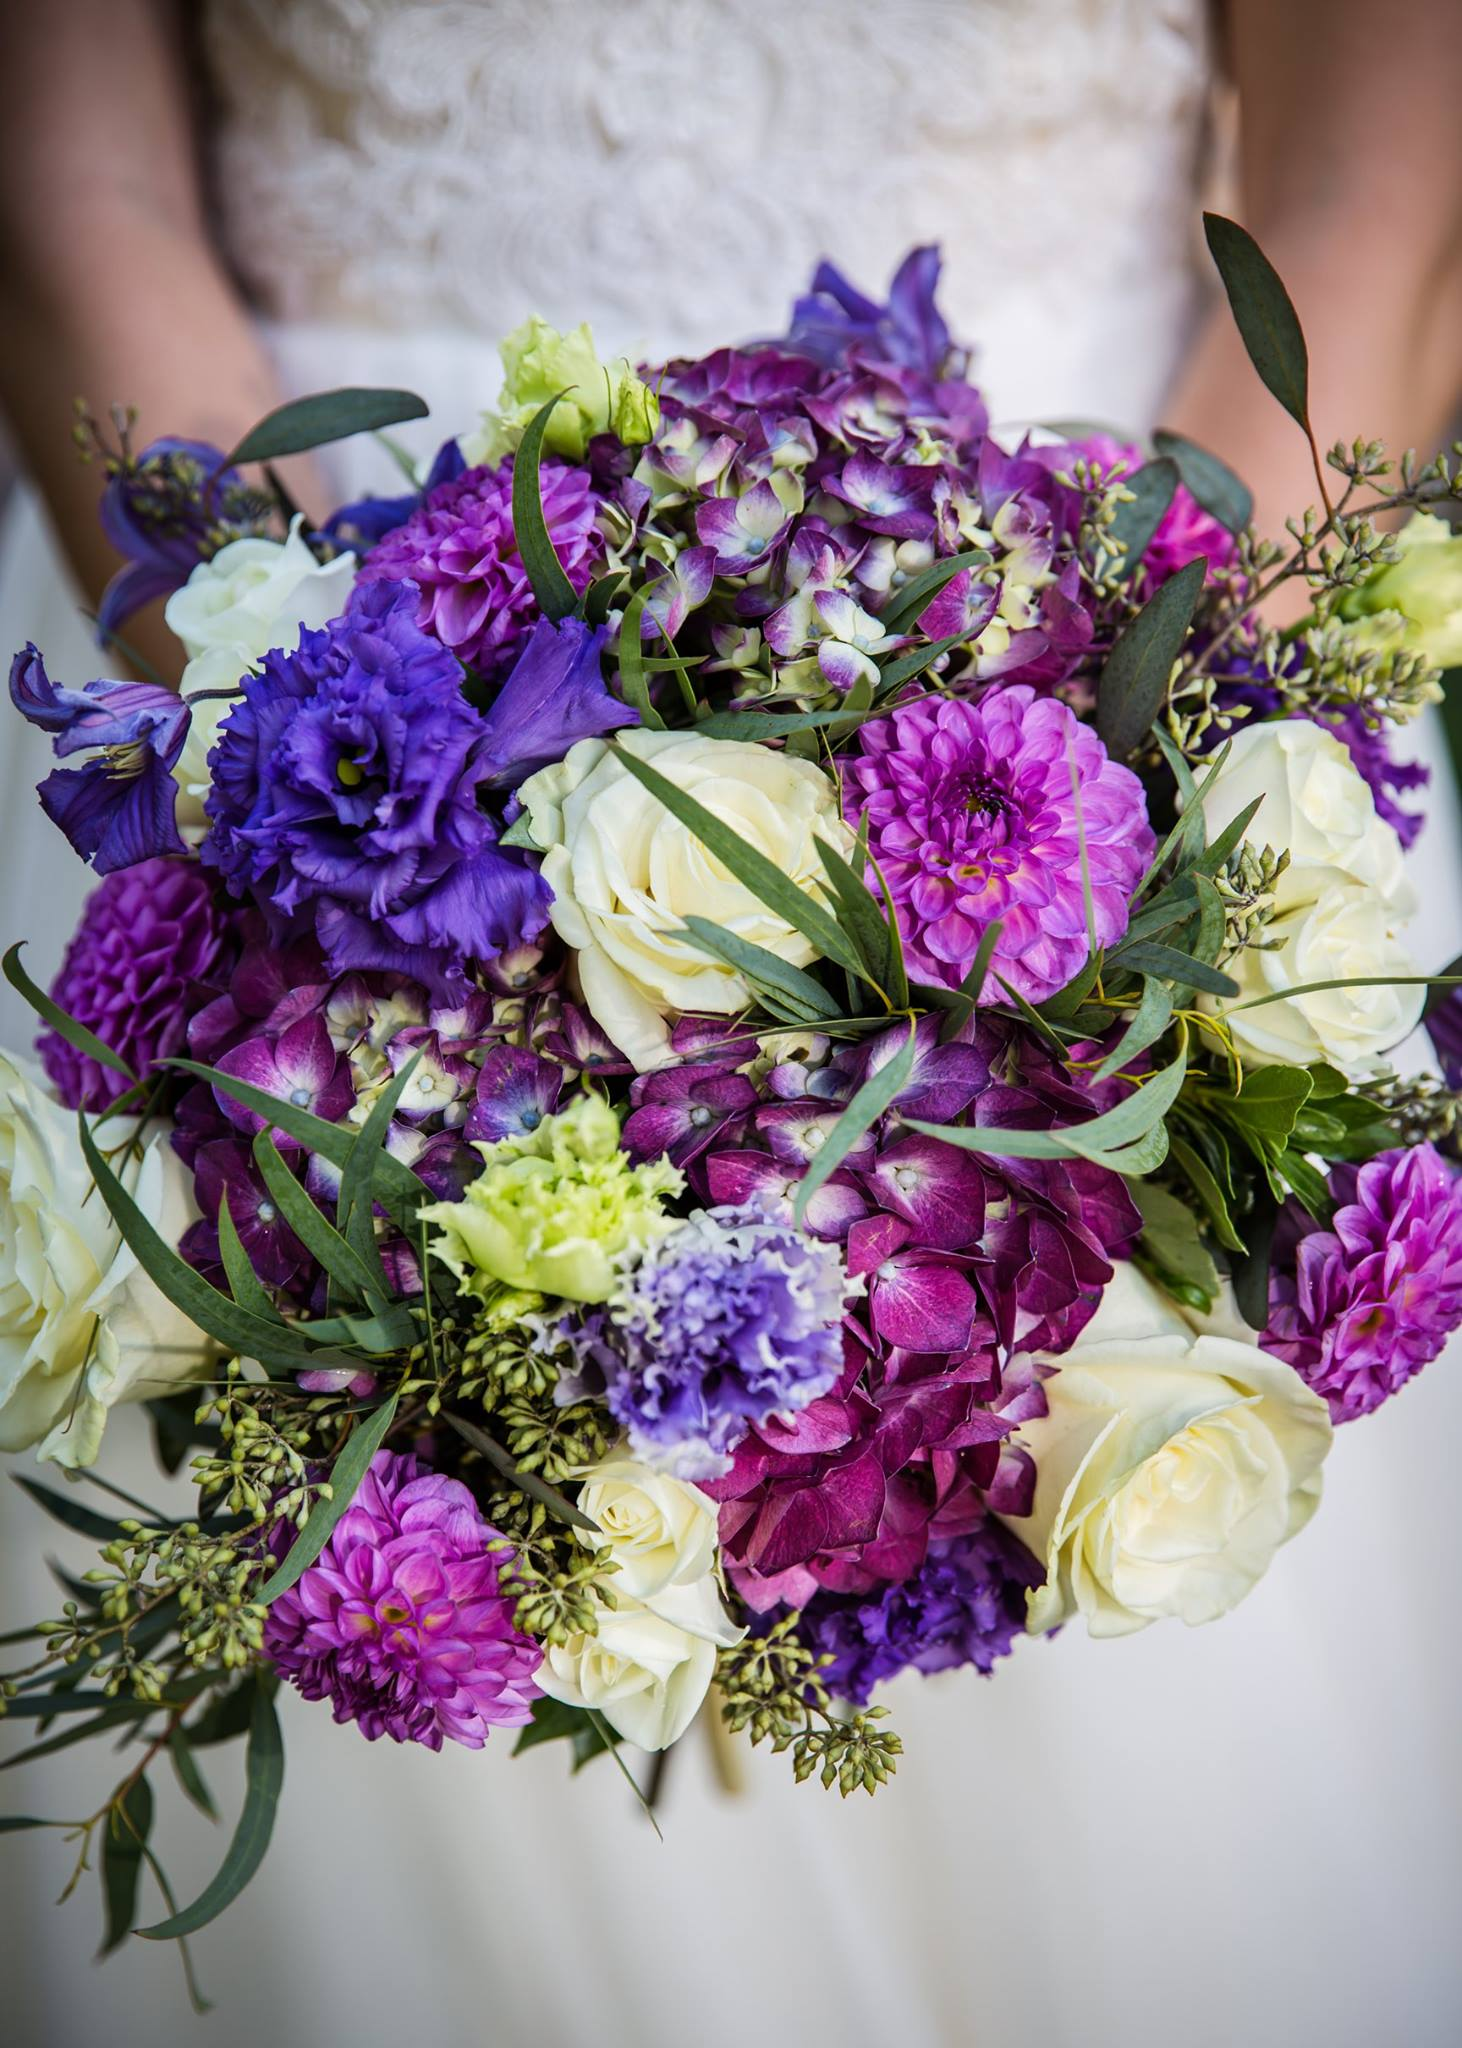 Beautiful wedding flowers in somerset flower station testimonials izmirmasajfo